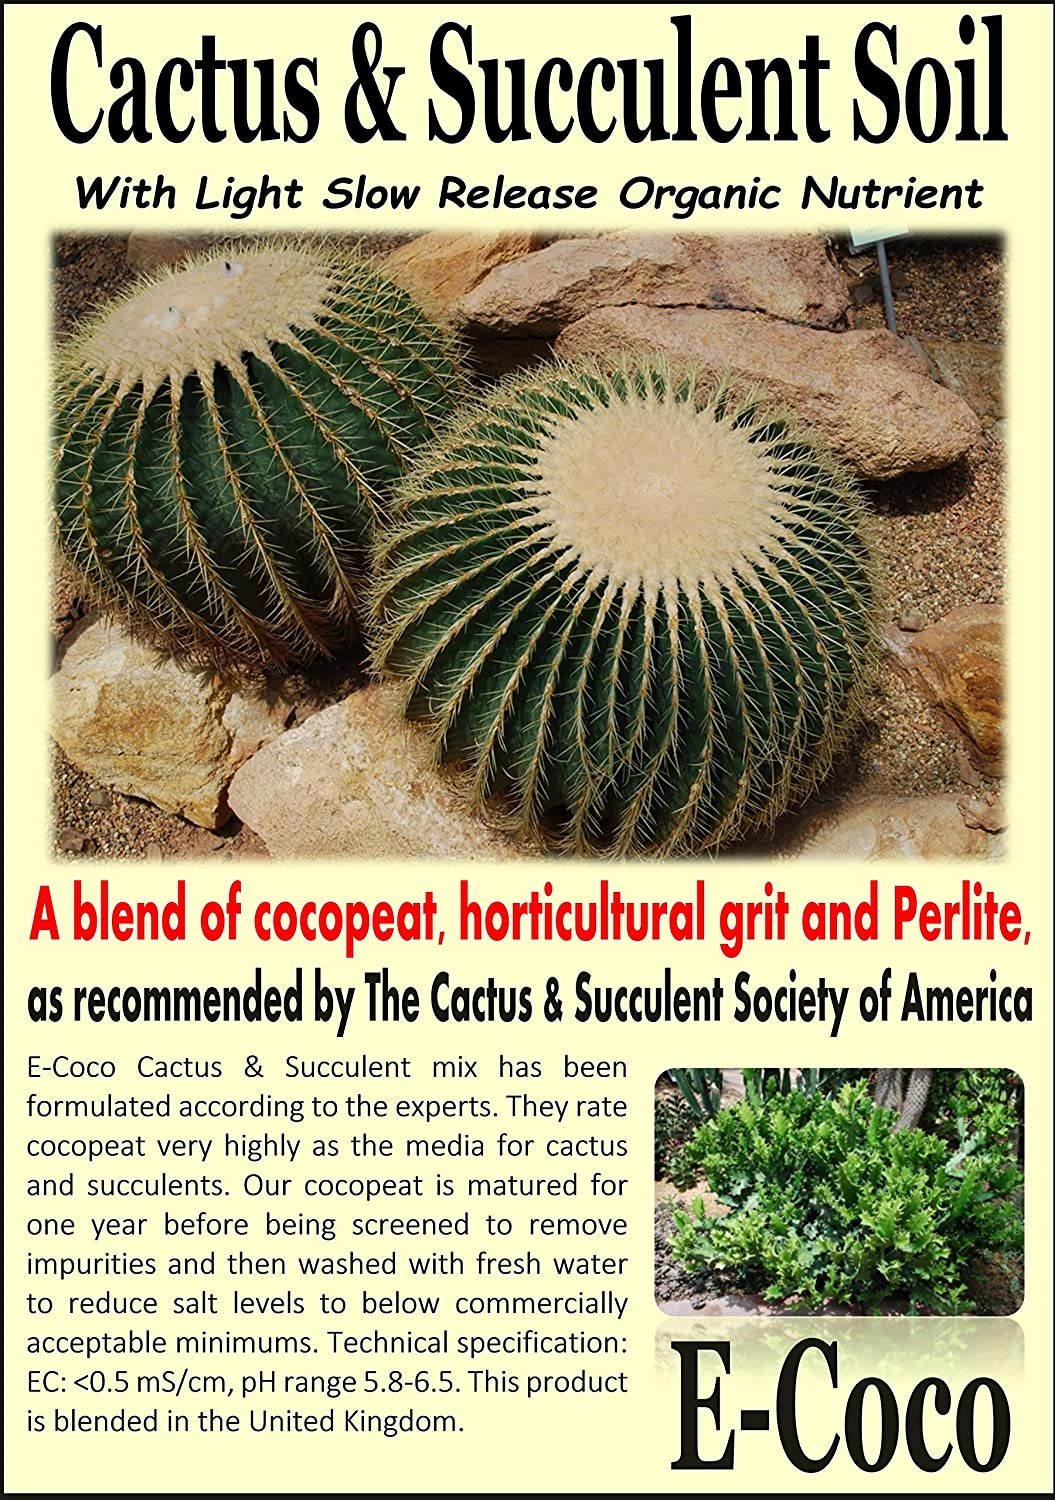 CACTUS & SUCCULENT COMPOST - CACTI SOIL WITH PERLITE FOR REPOTTING CACTI & SUCCULENTS PLANTS (1 LITRE) E-Coco Products UK